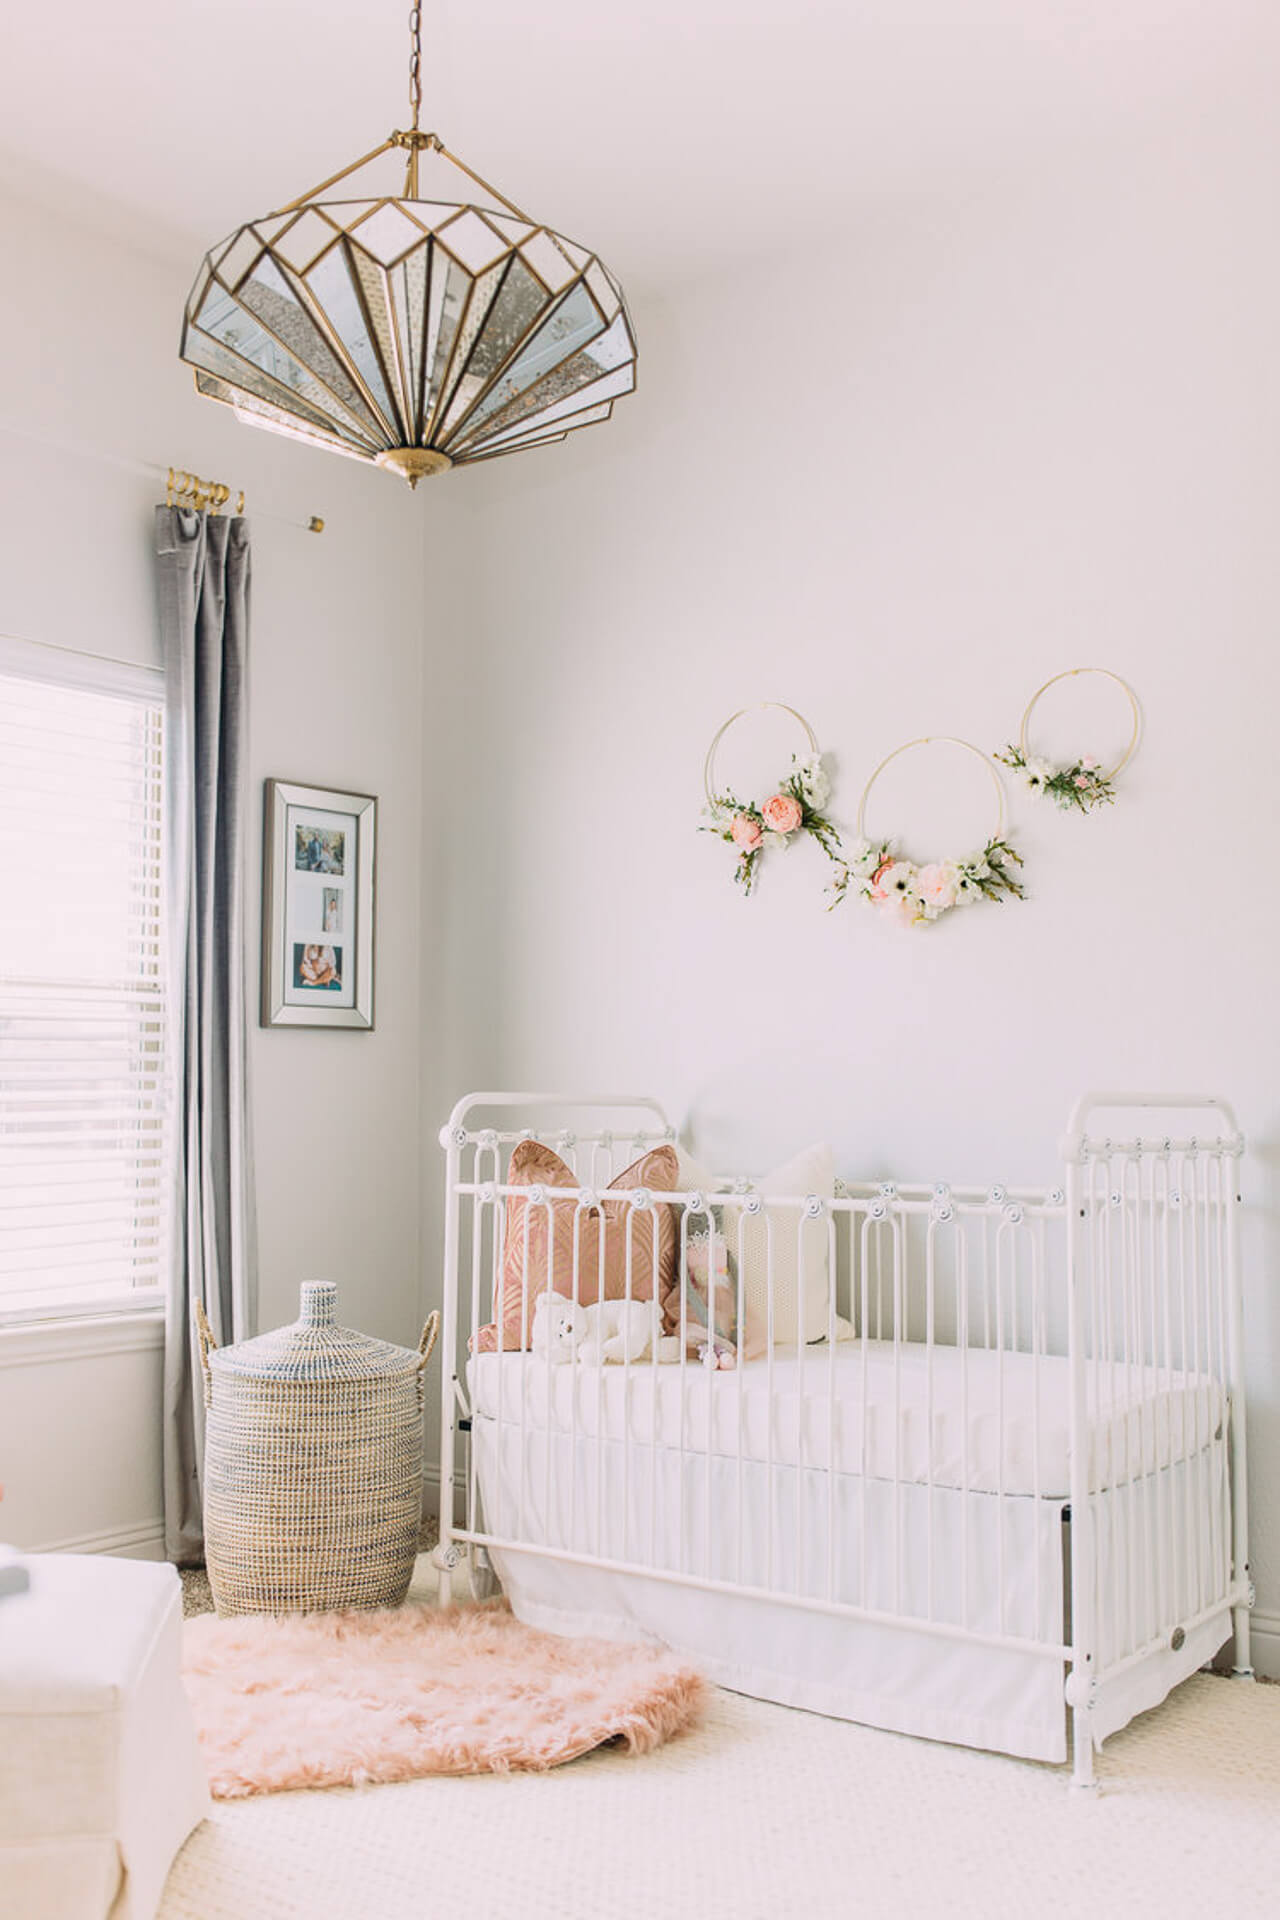 This art deco decor for a baby nursery is so chic!- M Loves M @marmar